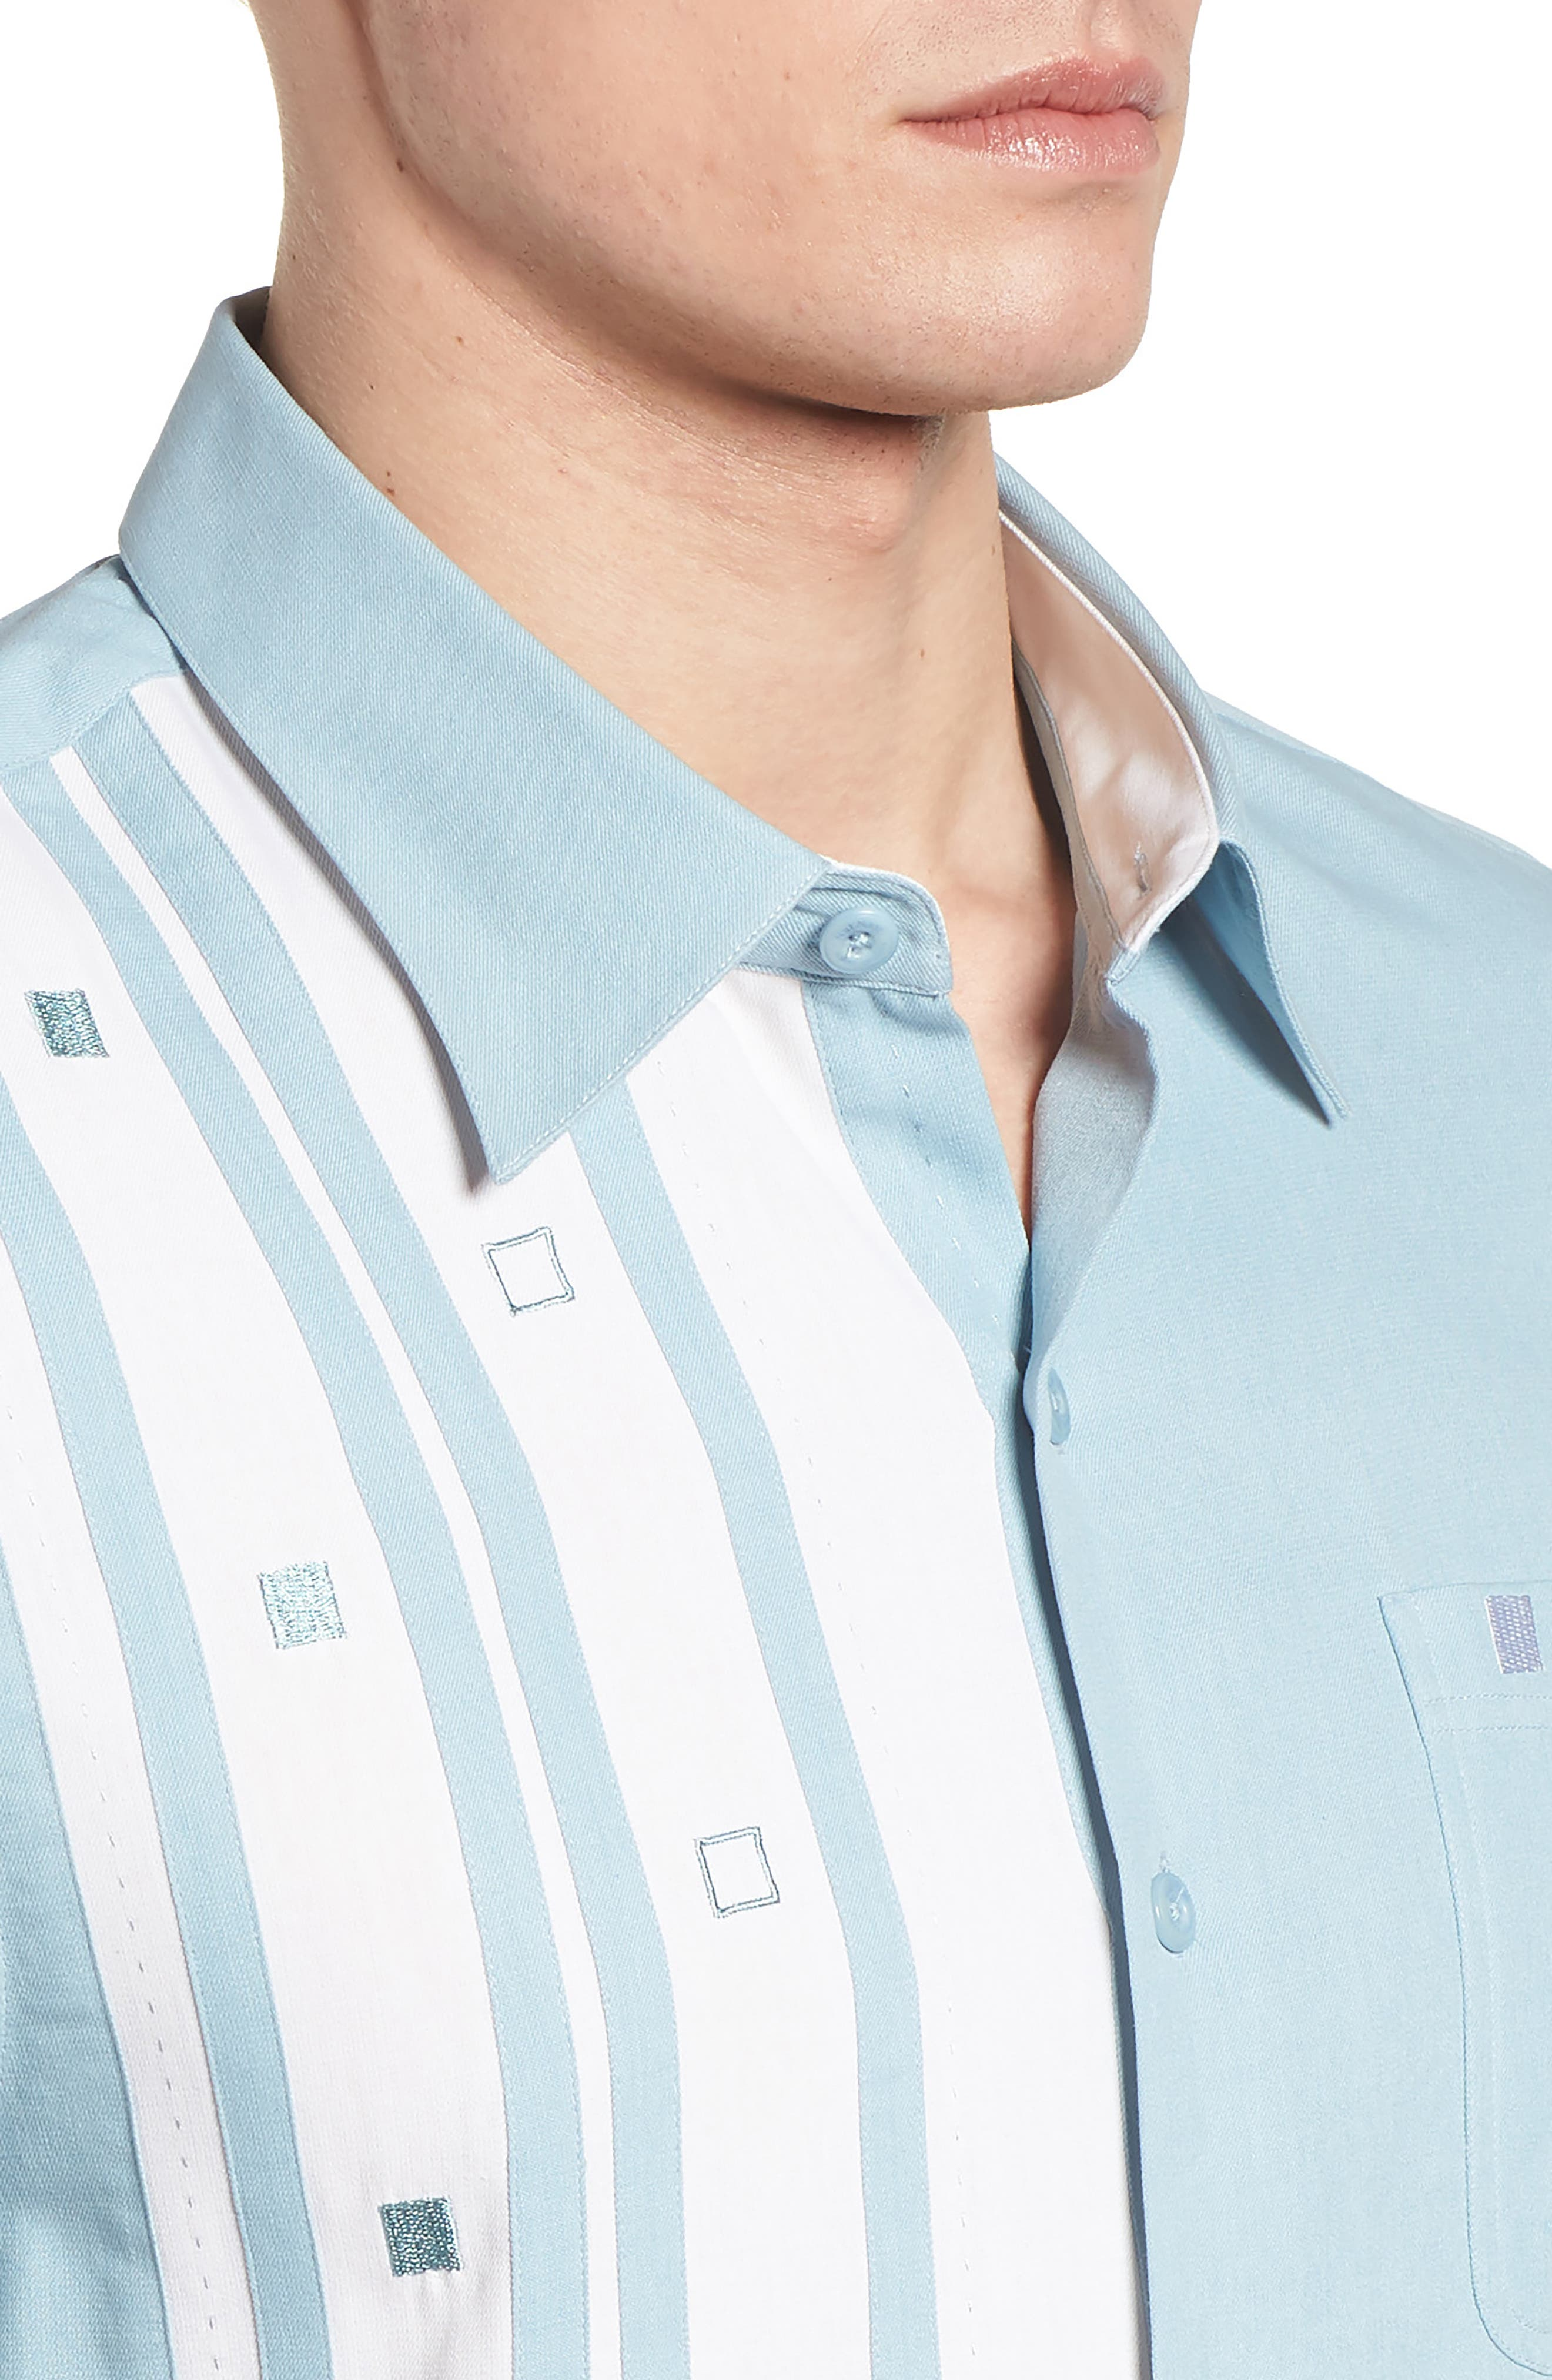 Retromod Camp Shirt,                             Alternate thumbnail 4, color,                             Niagra Blue